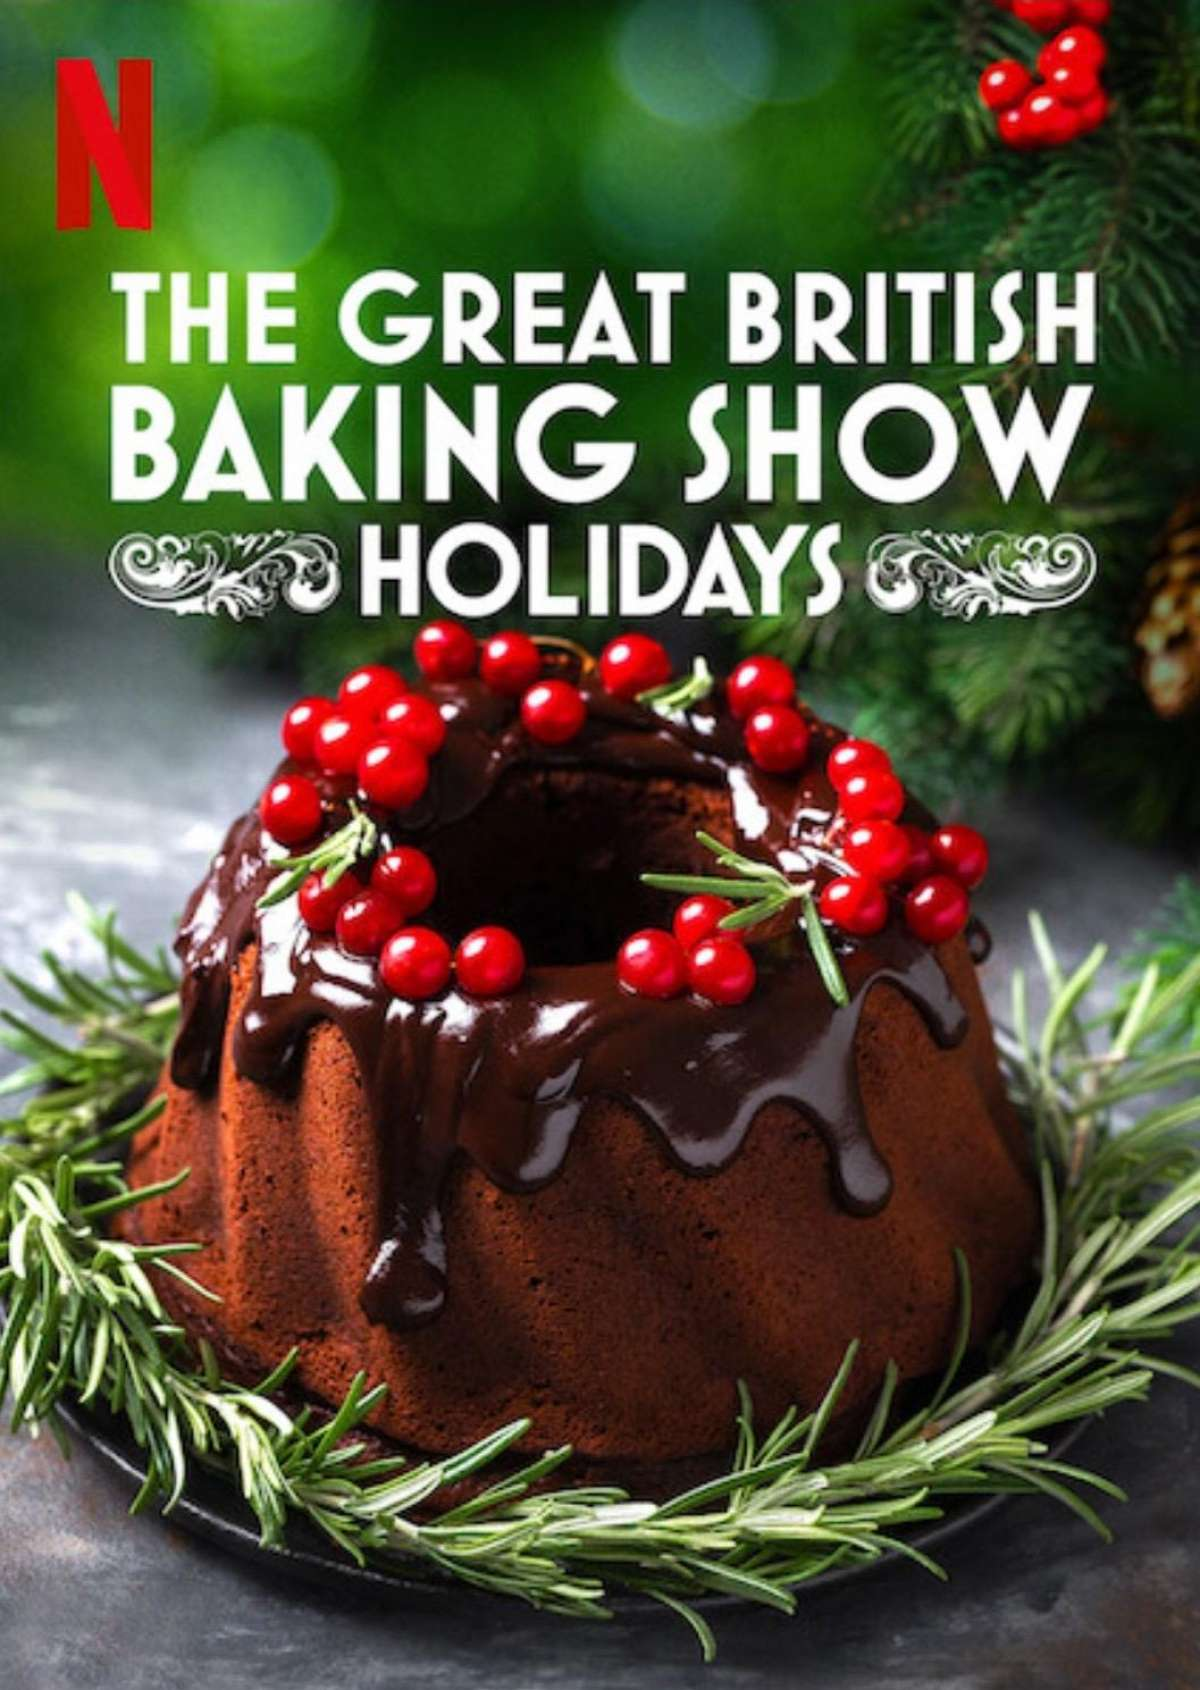 The Great British Baking Show Holidays teaser image